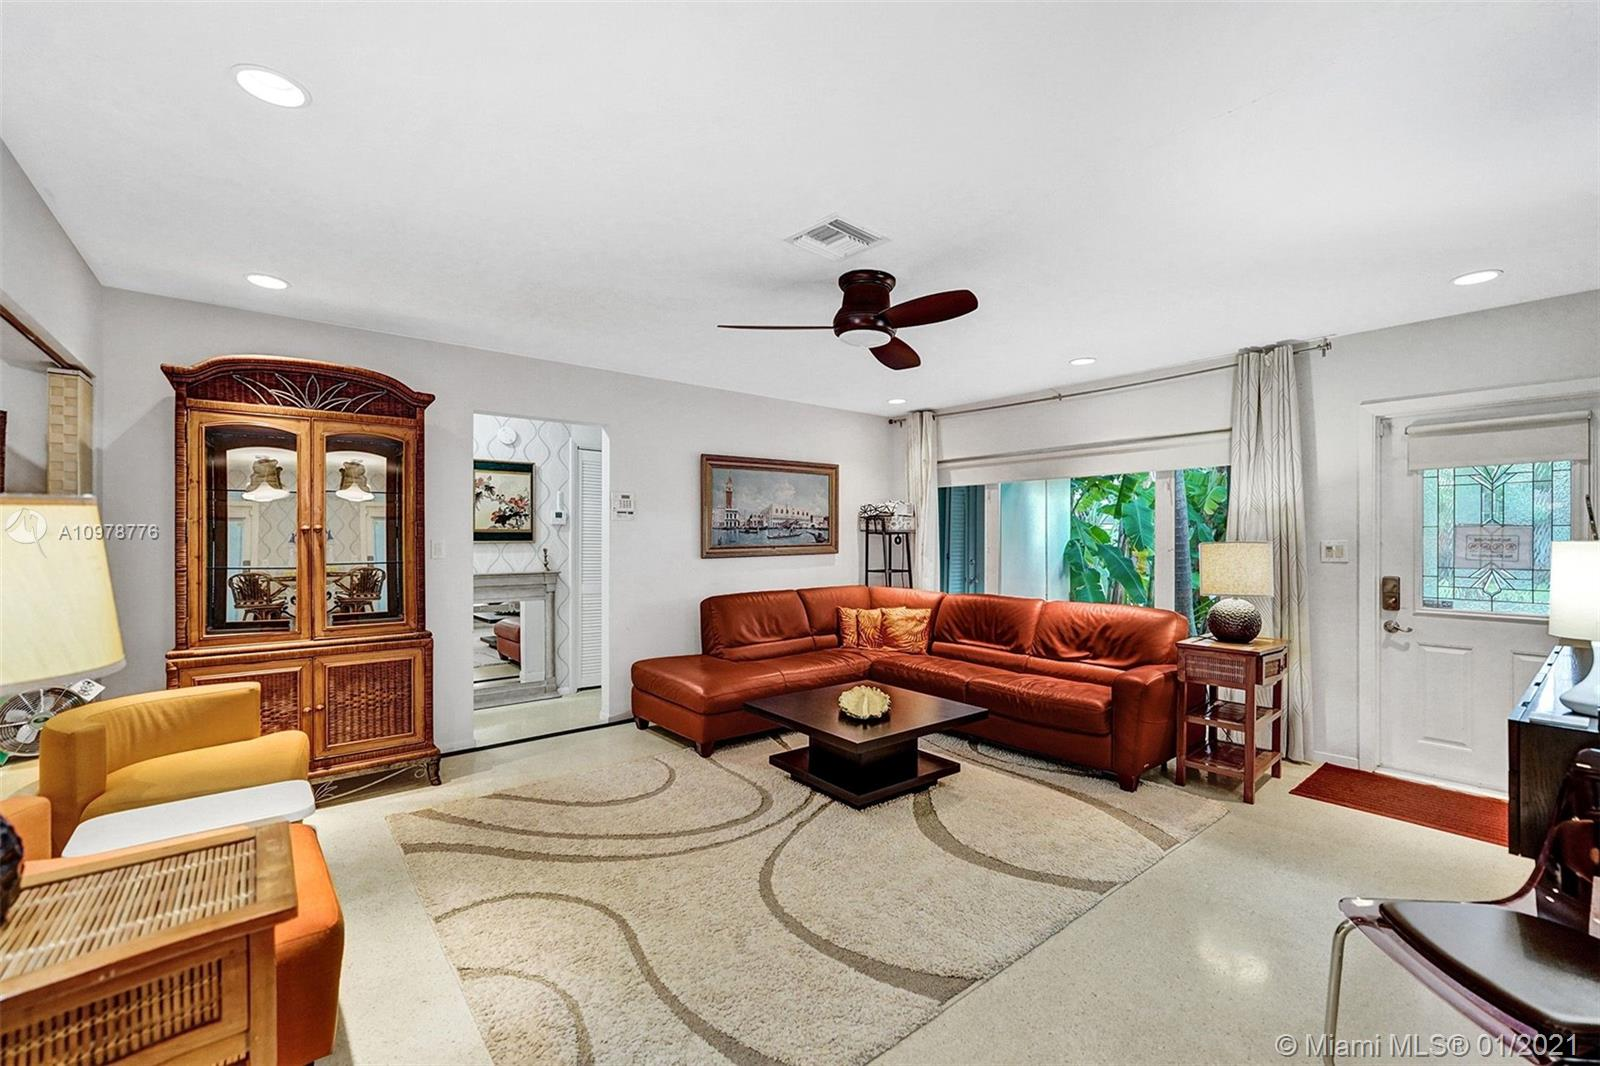 AMAZING OPPORTUNITY TO OWN A 2/2 HOME ON A HUGE LOT ON ONE OF THE BEST STREETS IN WILTON MANORS. THIS HOME HAS A 2009 BARREL TULE ROOF AND 100% STORM ACCORDION SHUTTERS. ENJOY THE SCREENED IN PATIO AS AN EXTENSION OF YOUR ENTERTAINMENT SPACE. BRAND NEW WATER HEATER AND WASHER/DRYER! TAKE A WALK TO WILTON DRIVE LOADED WITH SHOPPING, RESTAURANTS, AND ENTERTAINMENT!!